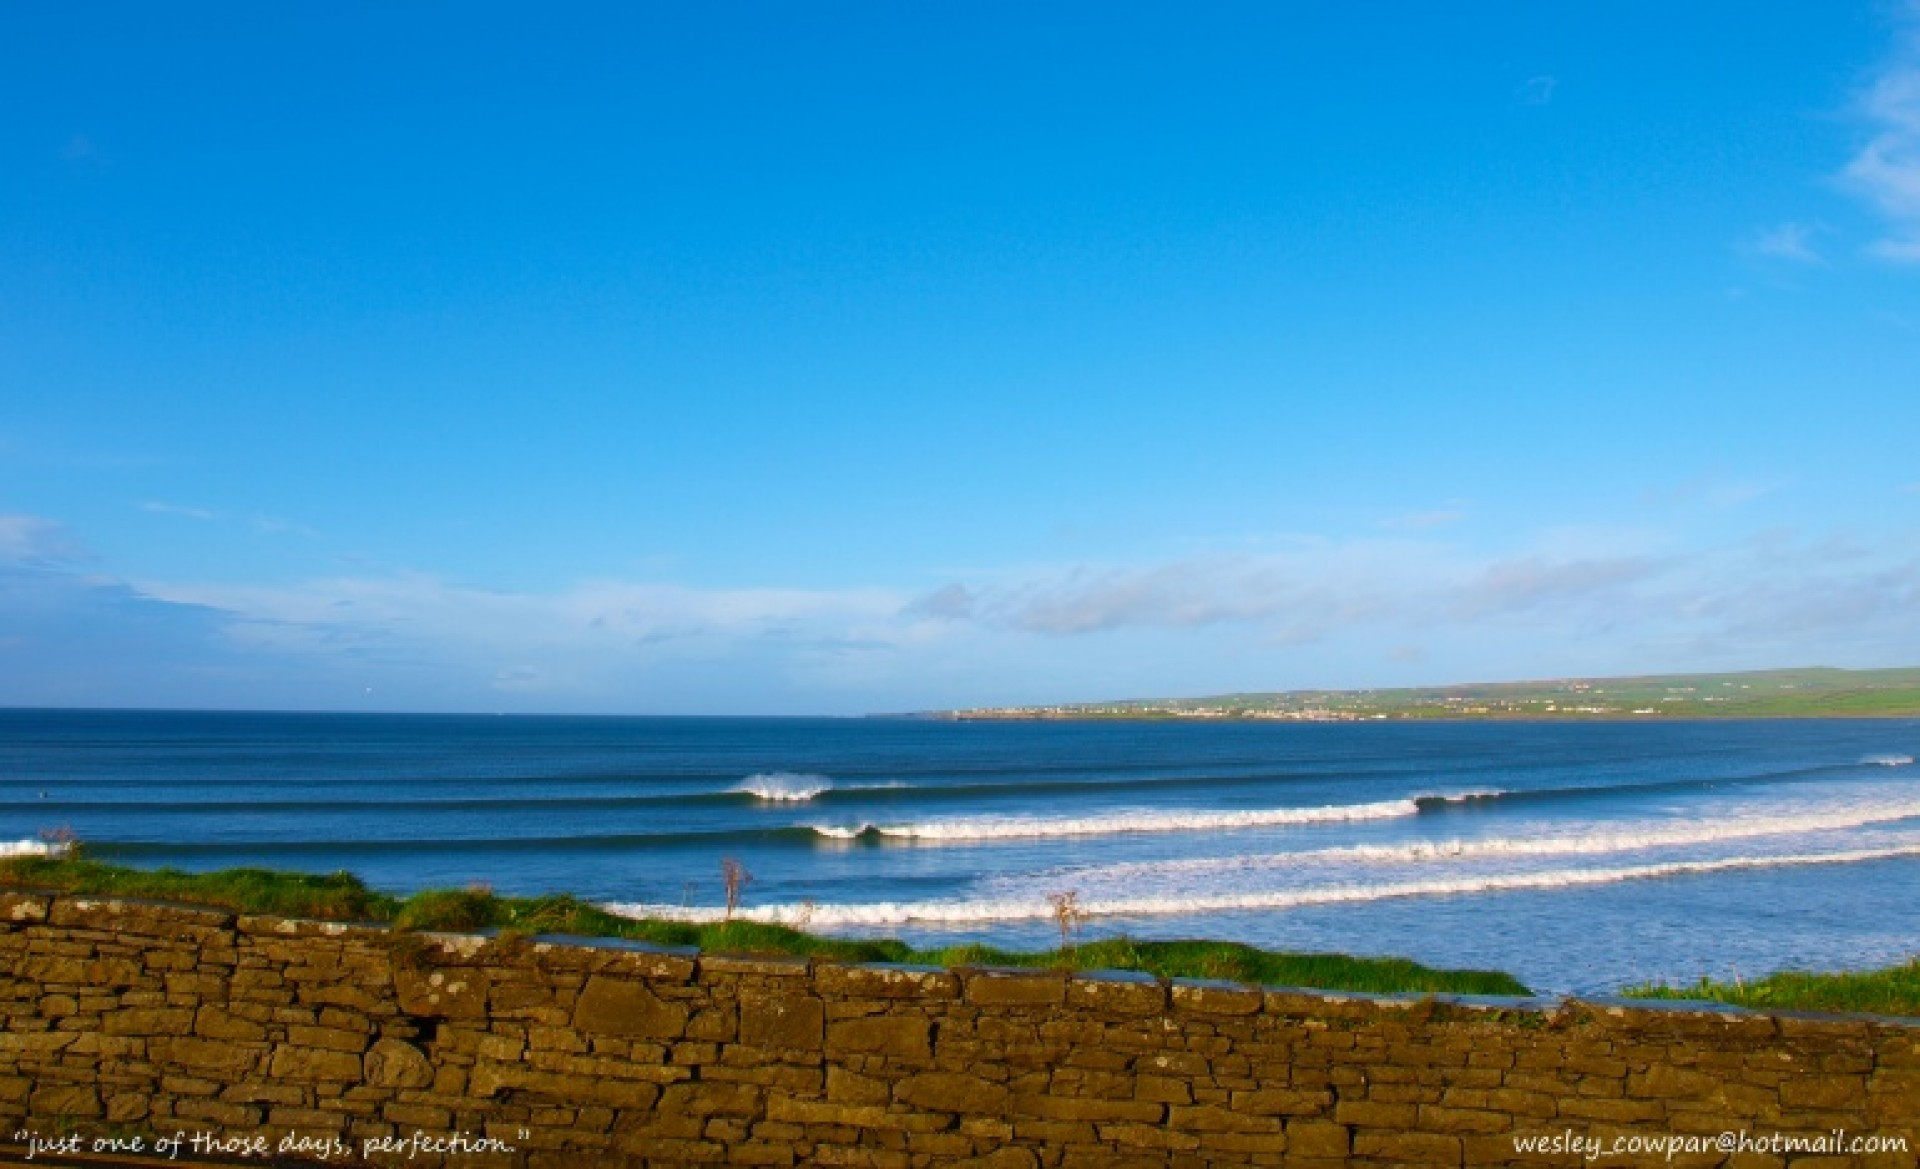 wezzzor's photo of Lahinch - Beach